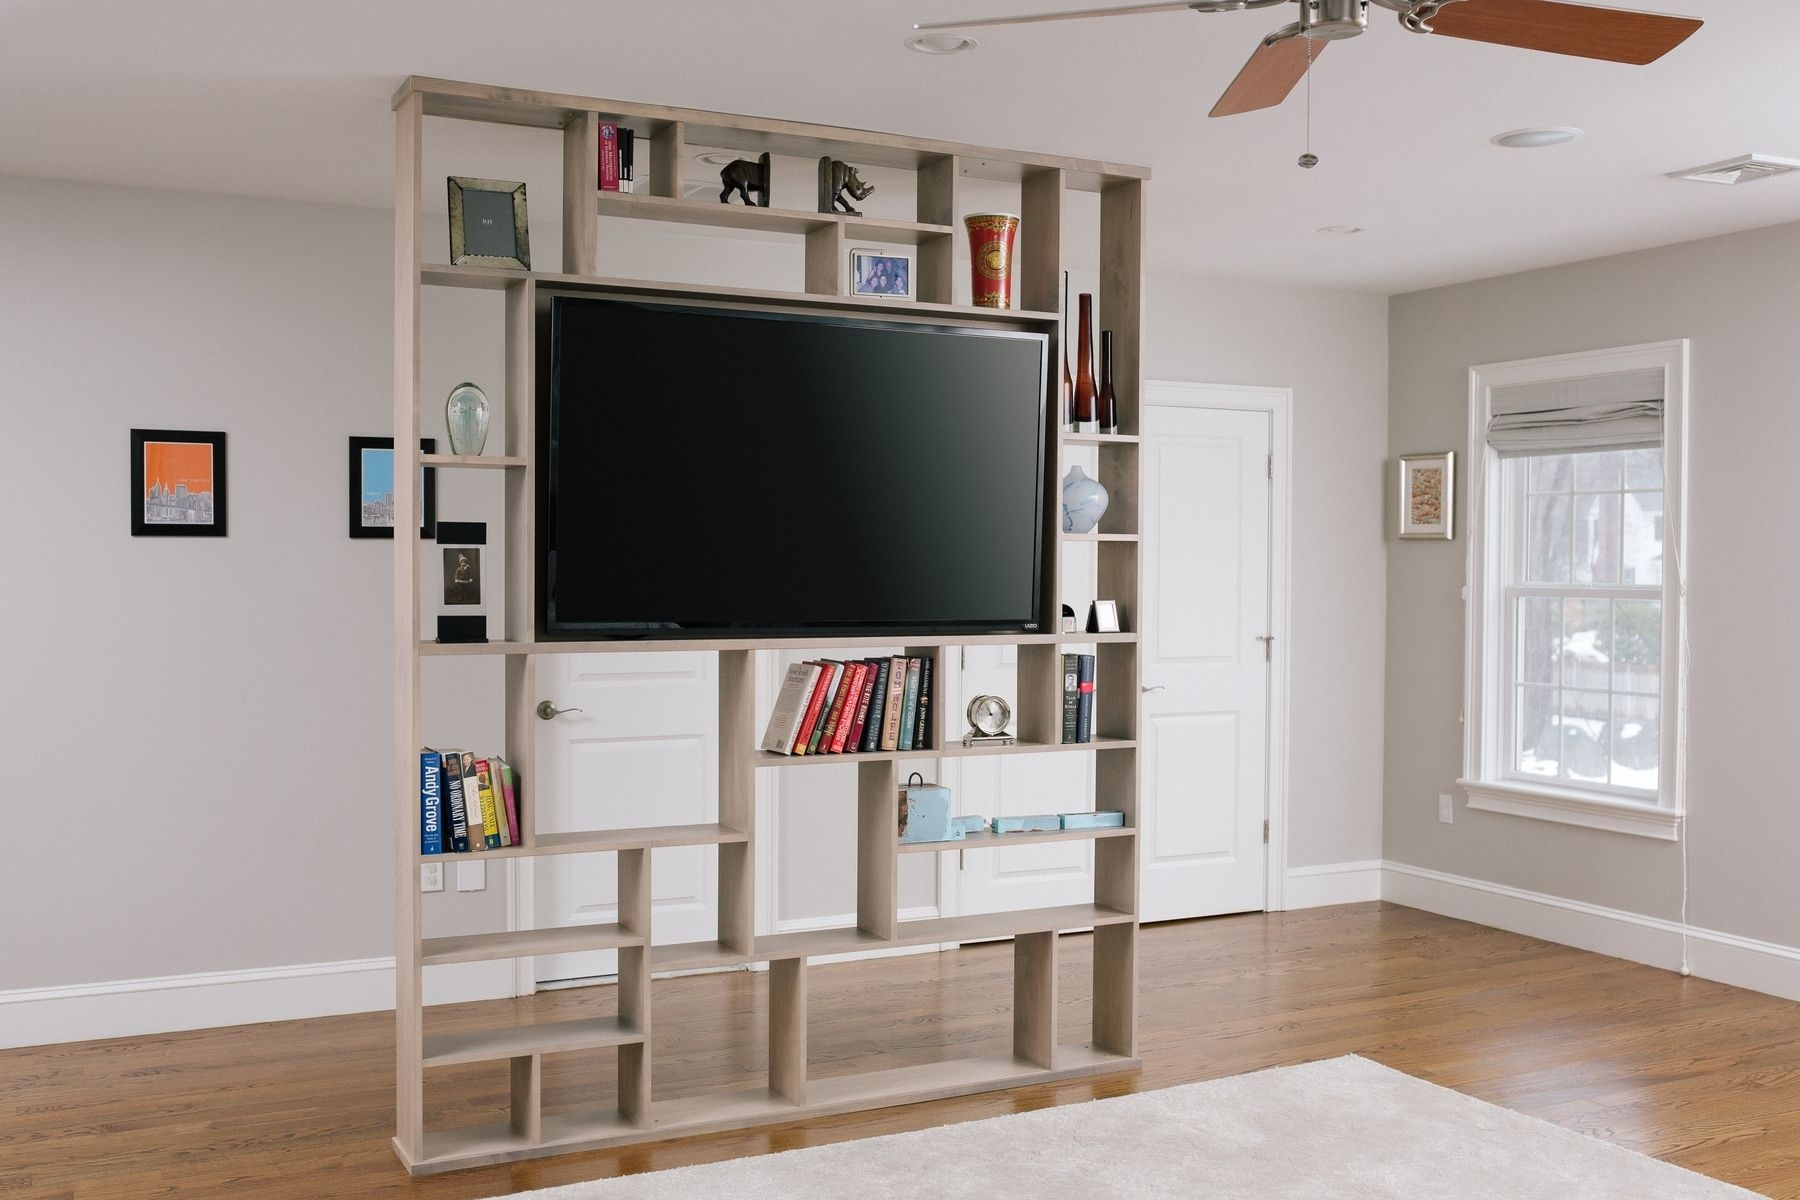 Hand Crafted Lexington Room Divider Bookshelf Tv Stand Corl Throughout Bookcase With Tv Unit (View 8 of 15)